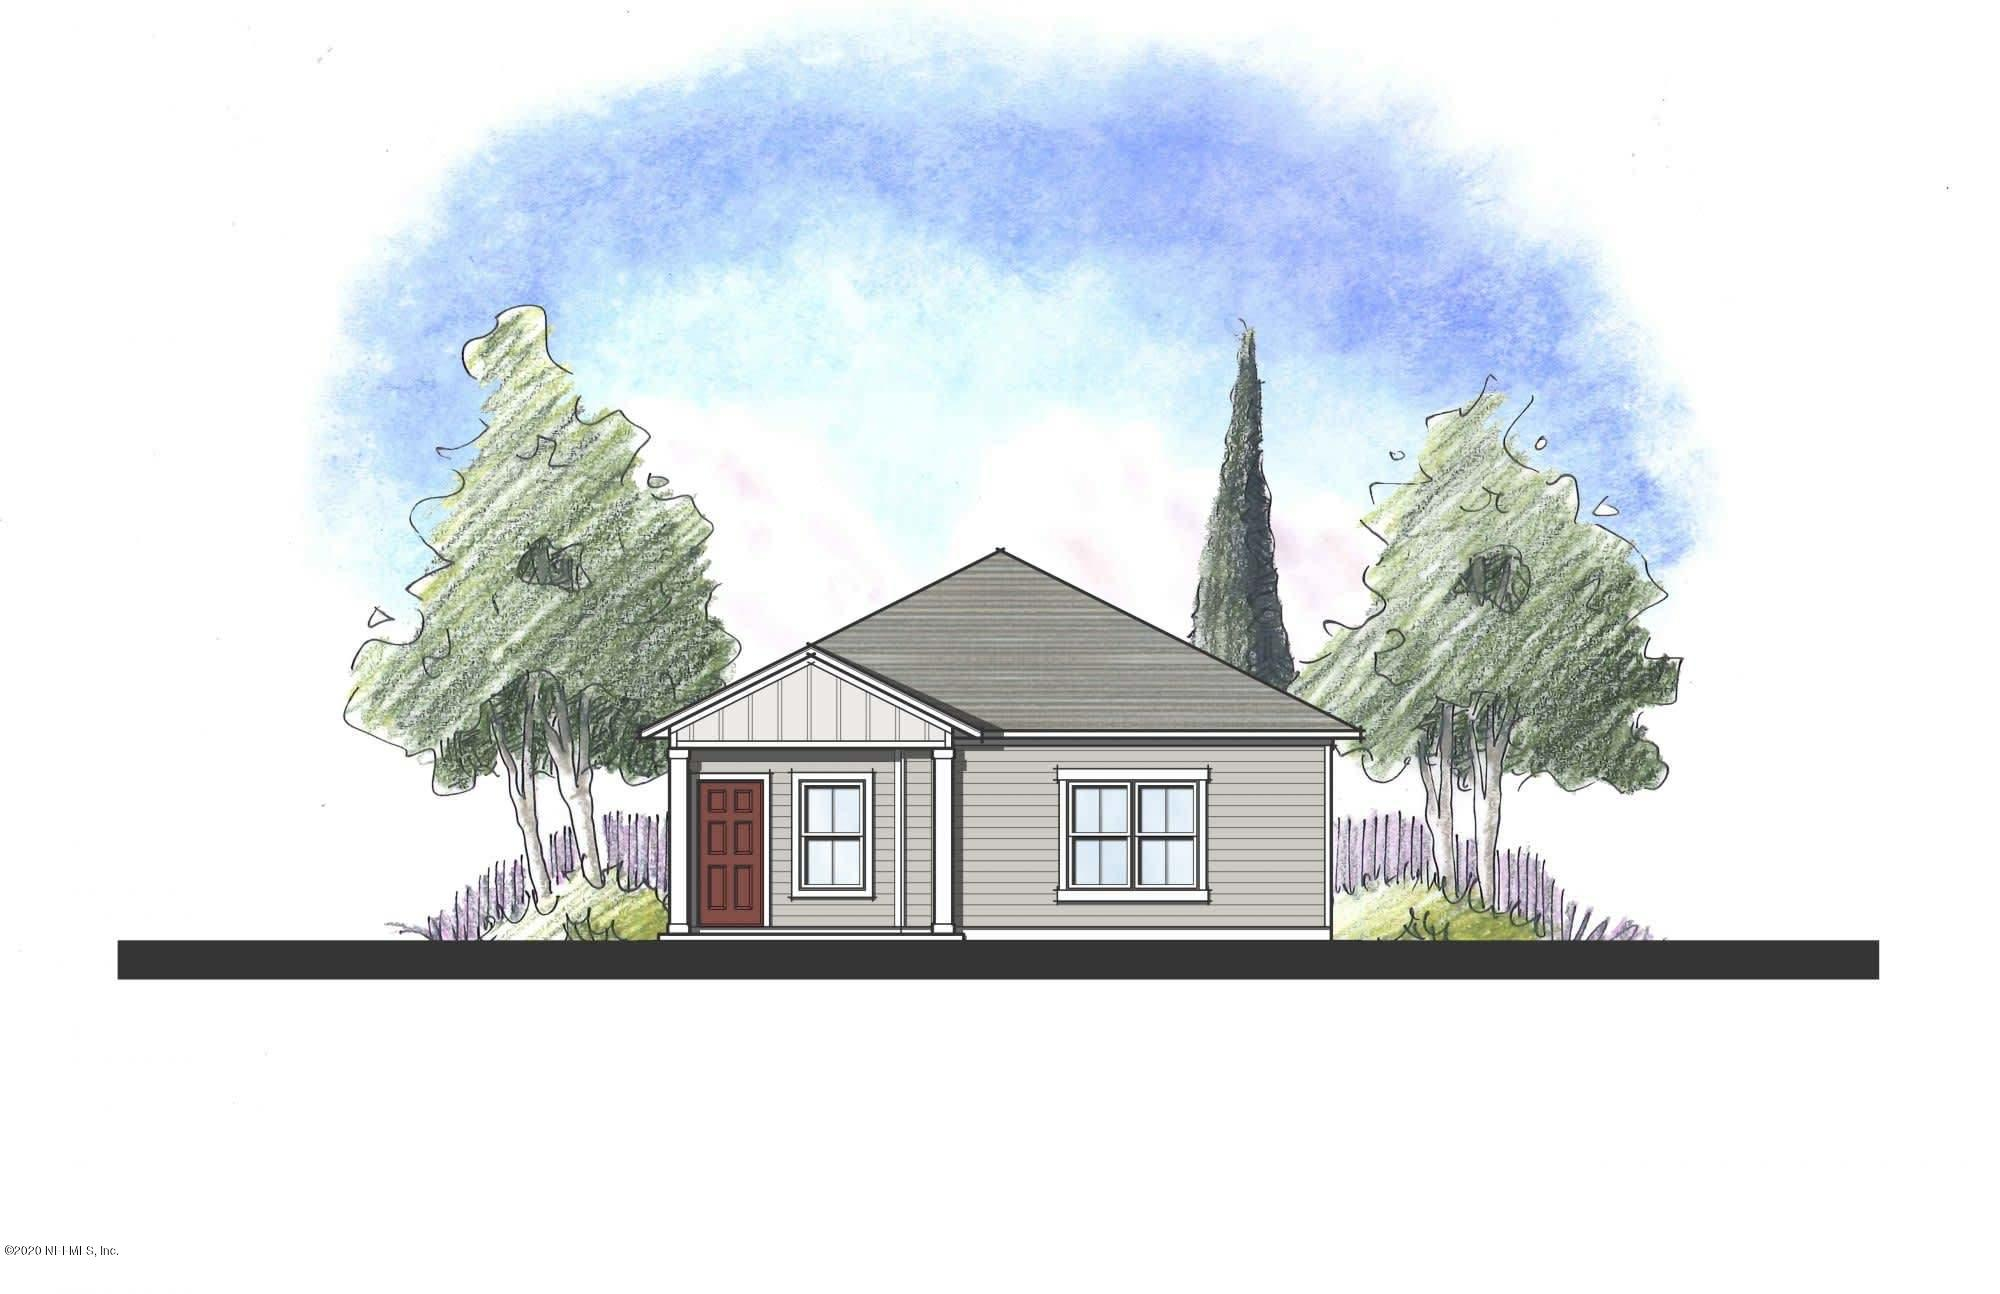 250 DAYDREAM, YULEE, FLORIDA 32097, 3 Bedrooms Bedrooms, ,2 BathroomsBathrooms,Residential,For sale,DAYDREAM,1080598